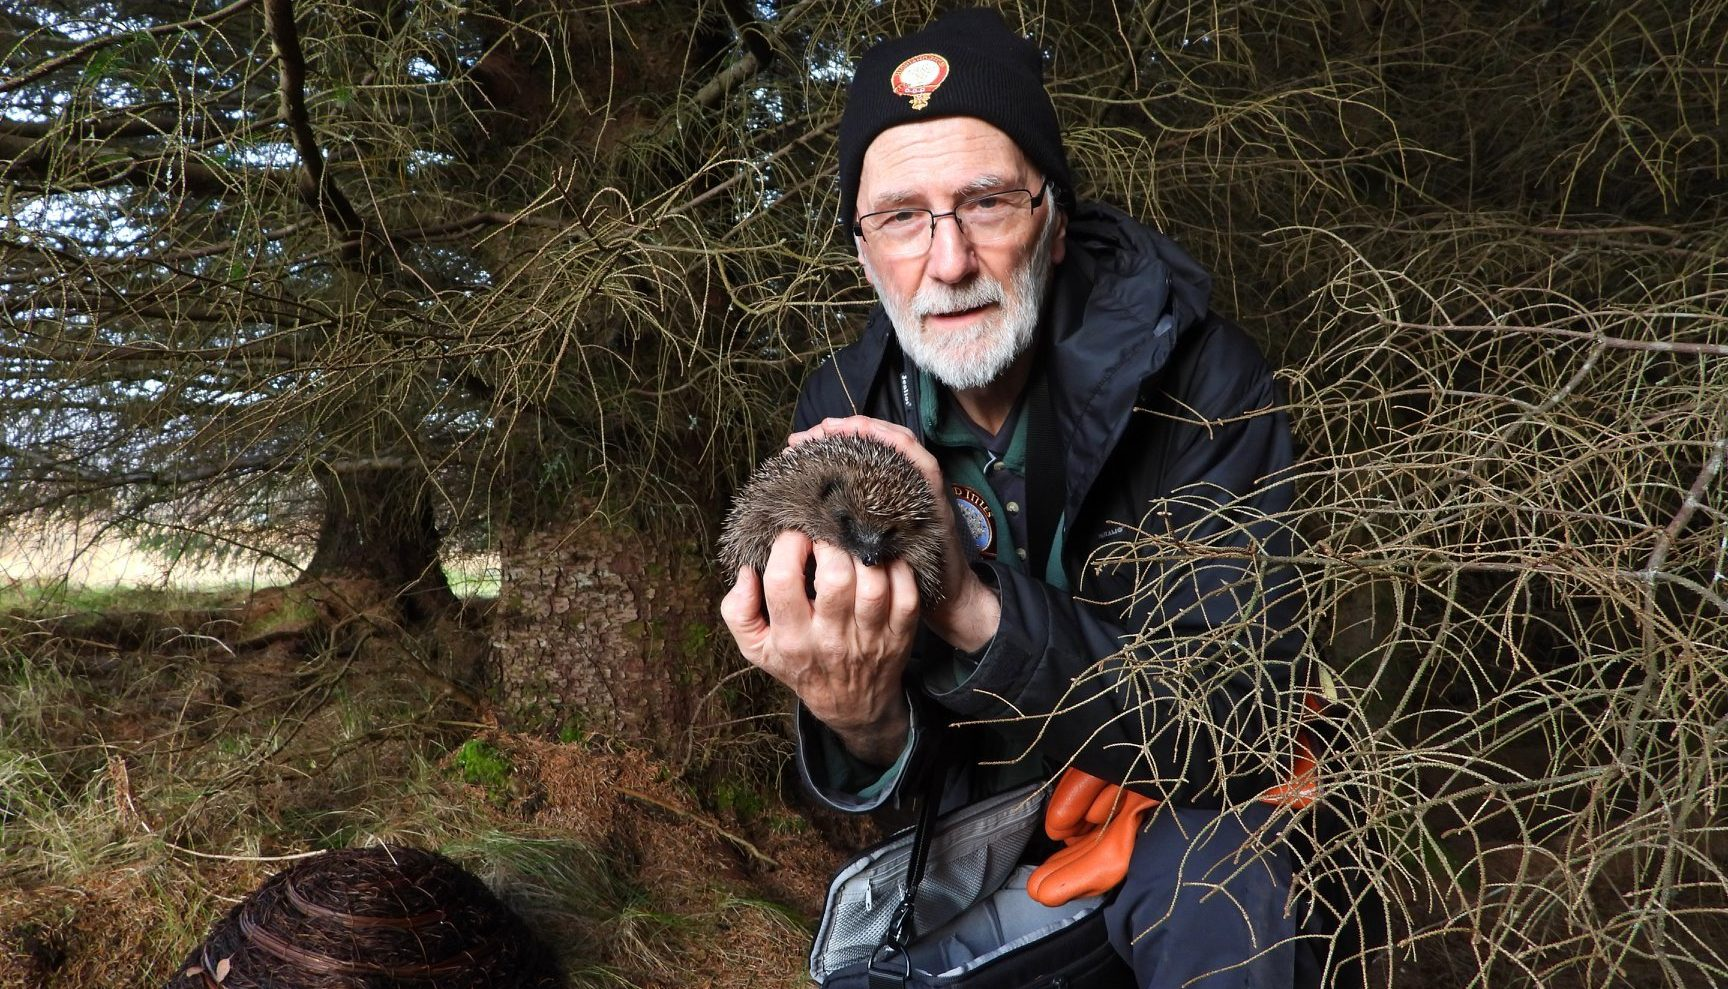 Stewart, the Reserve Warden, holding a hedgehog in the Sanctuary